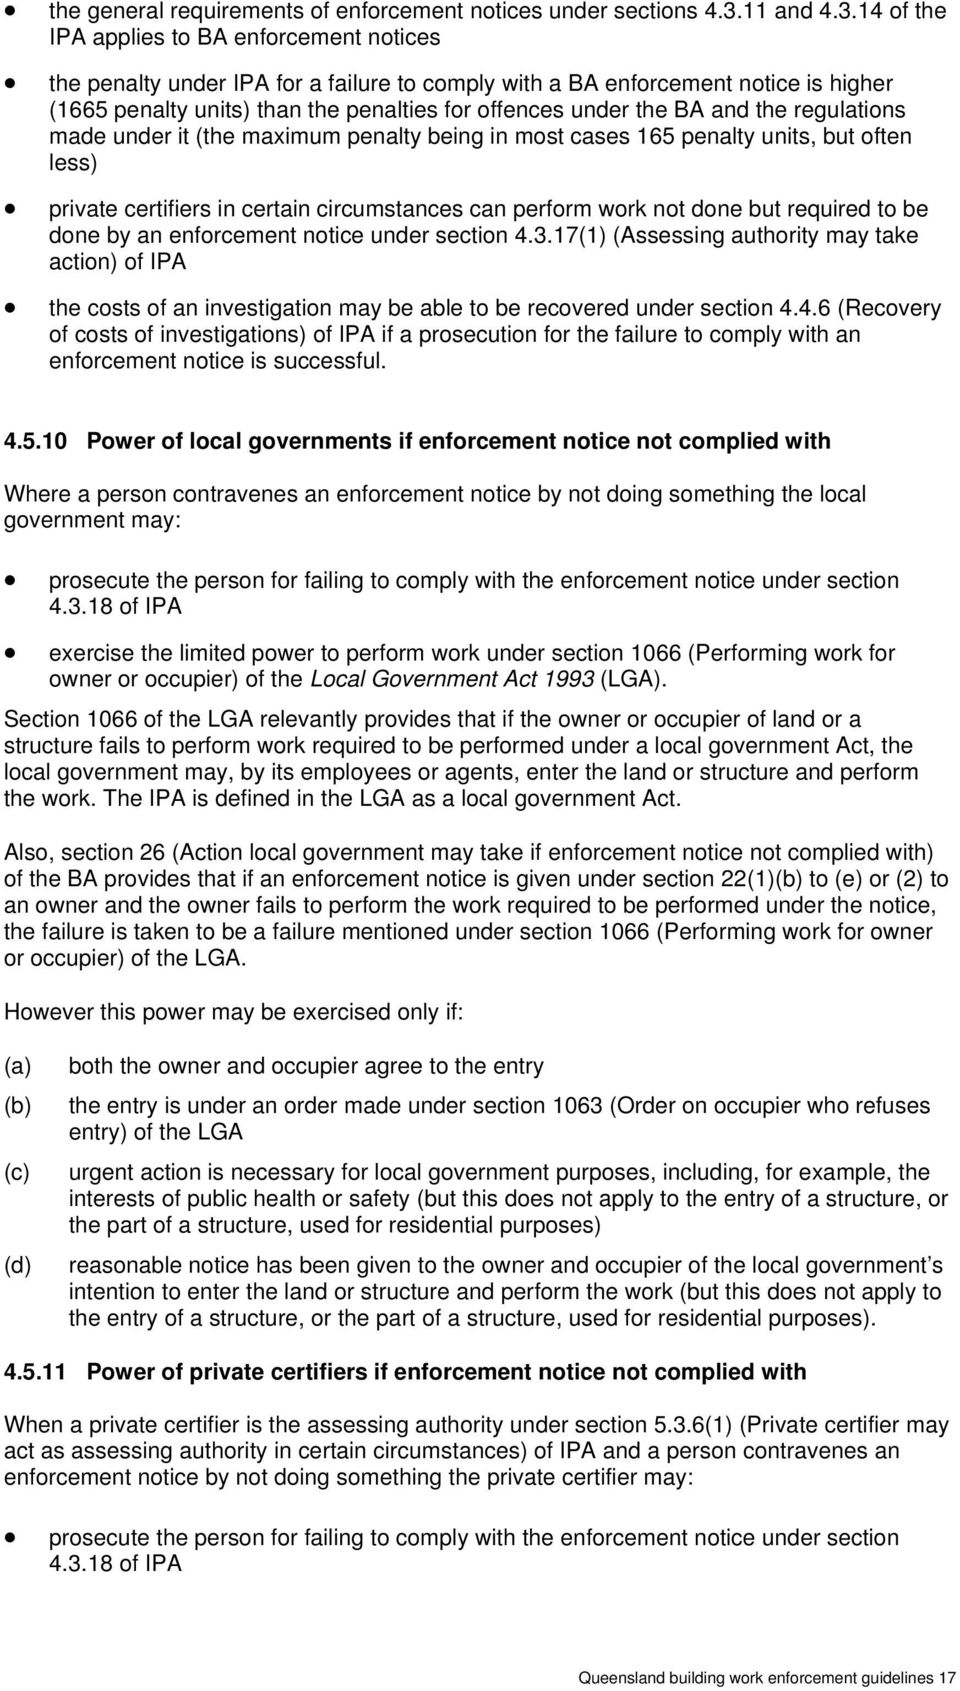 14 of the IPA applies to BA enforcement notices the penalty under IPA for a failure to comply with a BA enforcement notice is higher (1665 penalty units) than the penalties for offences under the BA